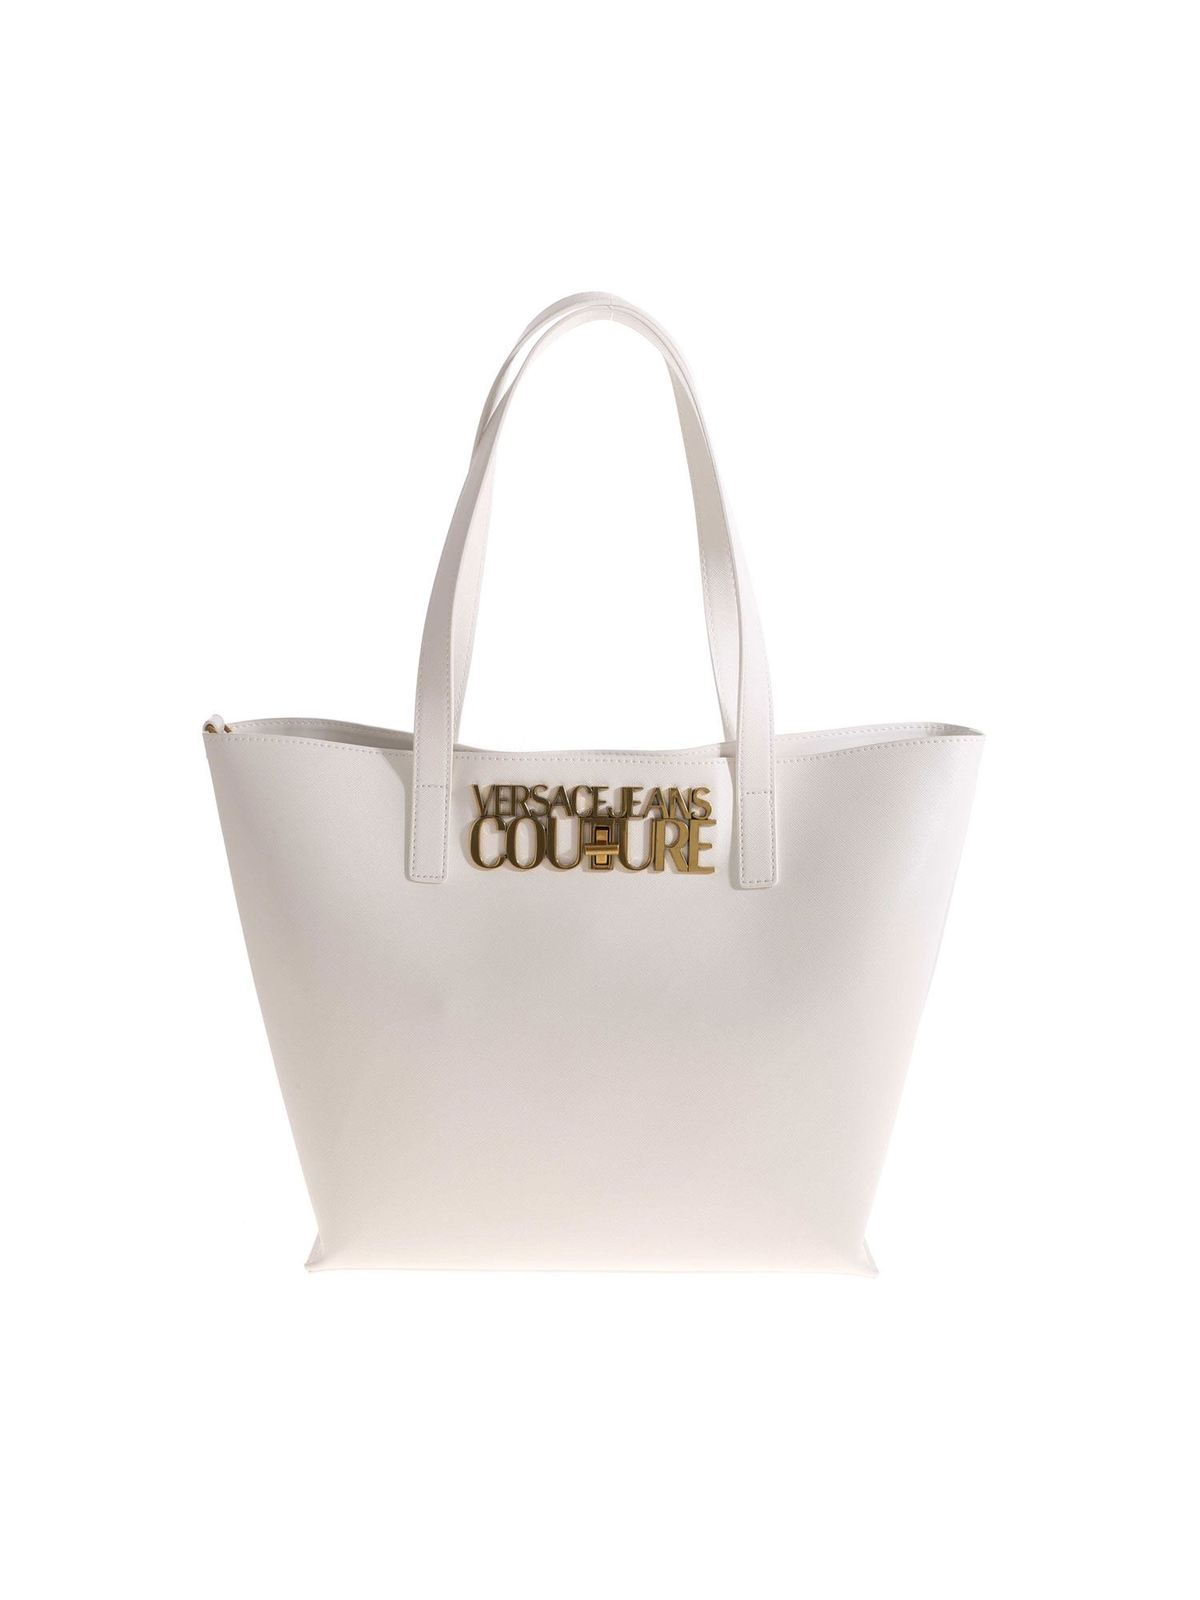 Versace Leathers LETTERING LOGO SHOPPER BAG IN WHITE